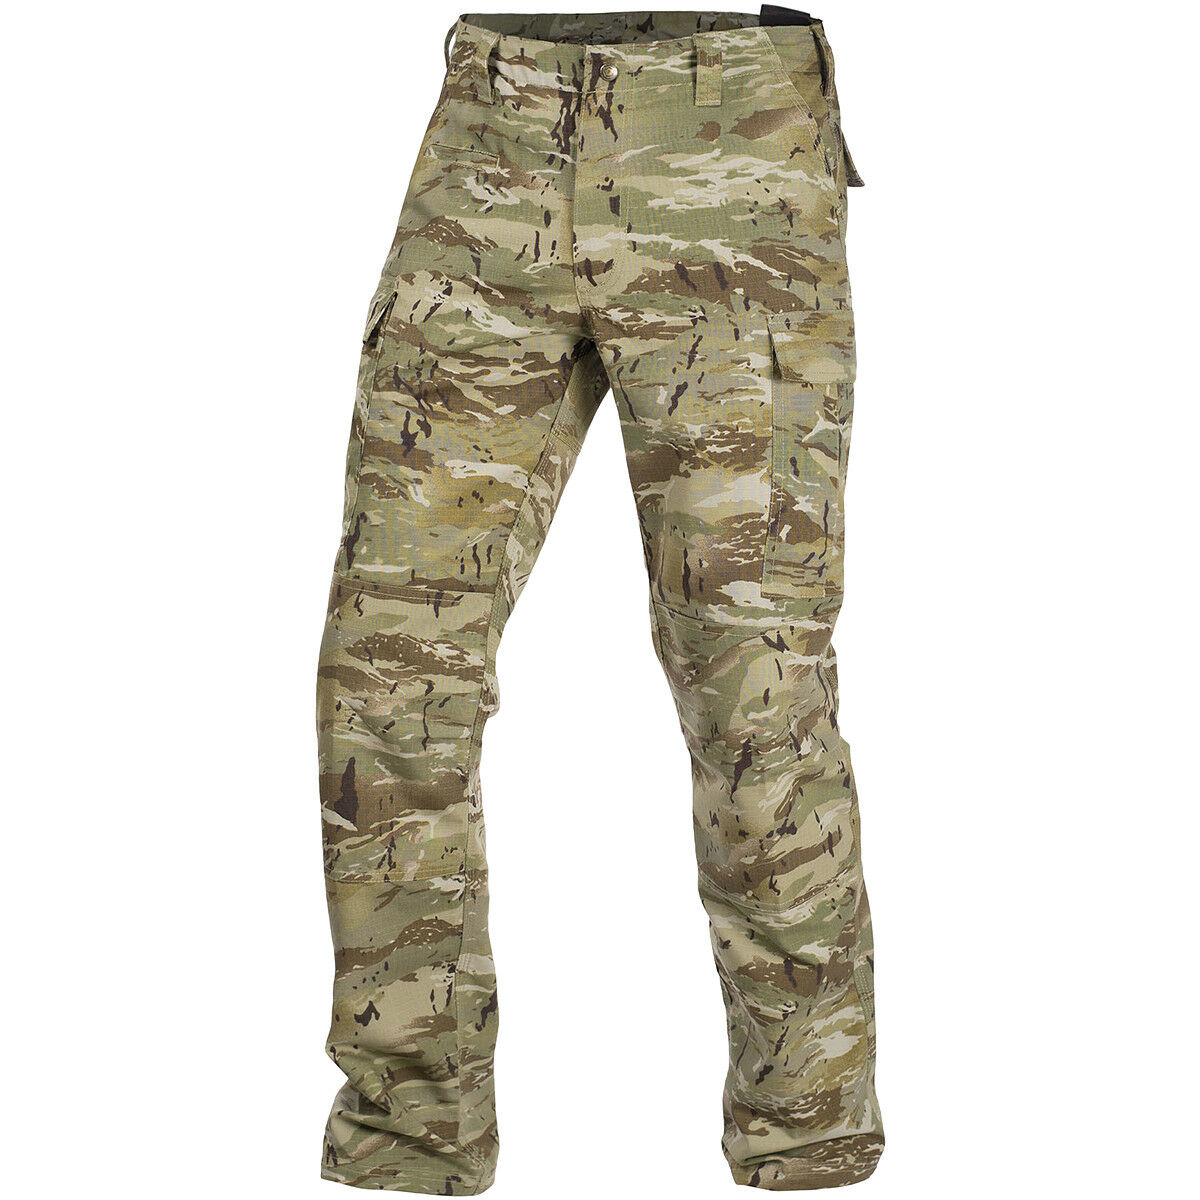 Pentagon BDU 2.0 Pants Airsoft Military Hunting Army Mens Trousers PentaCamo